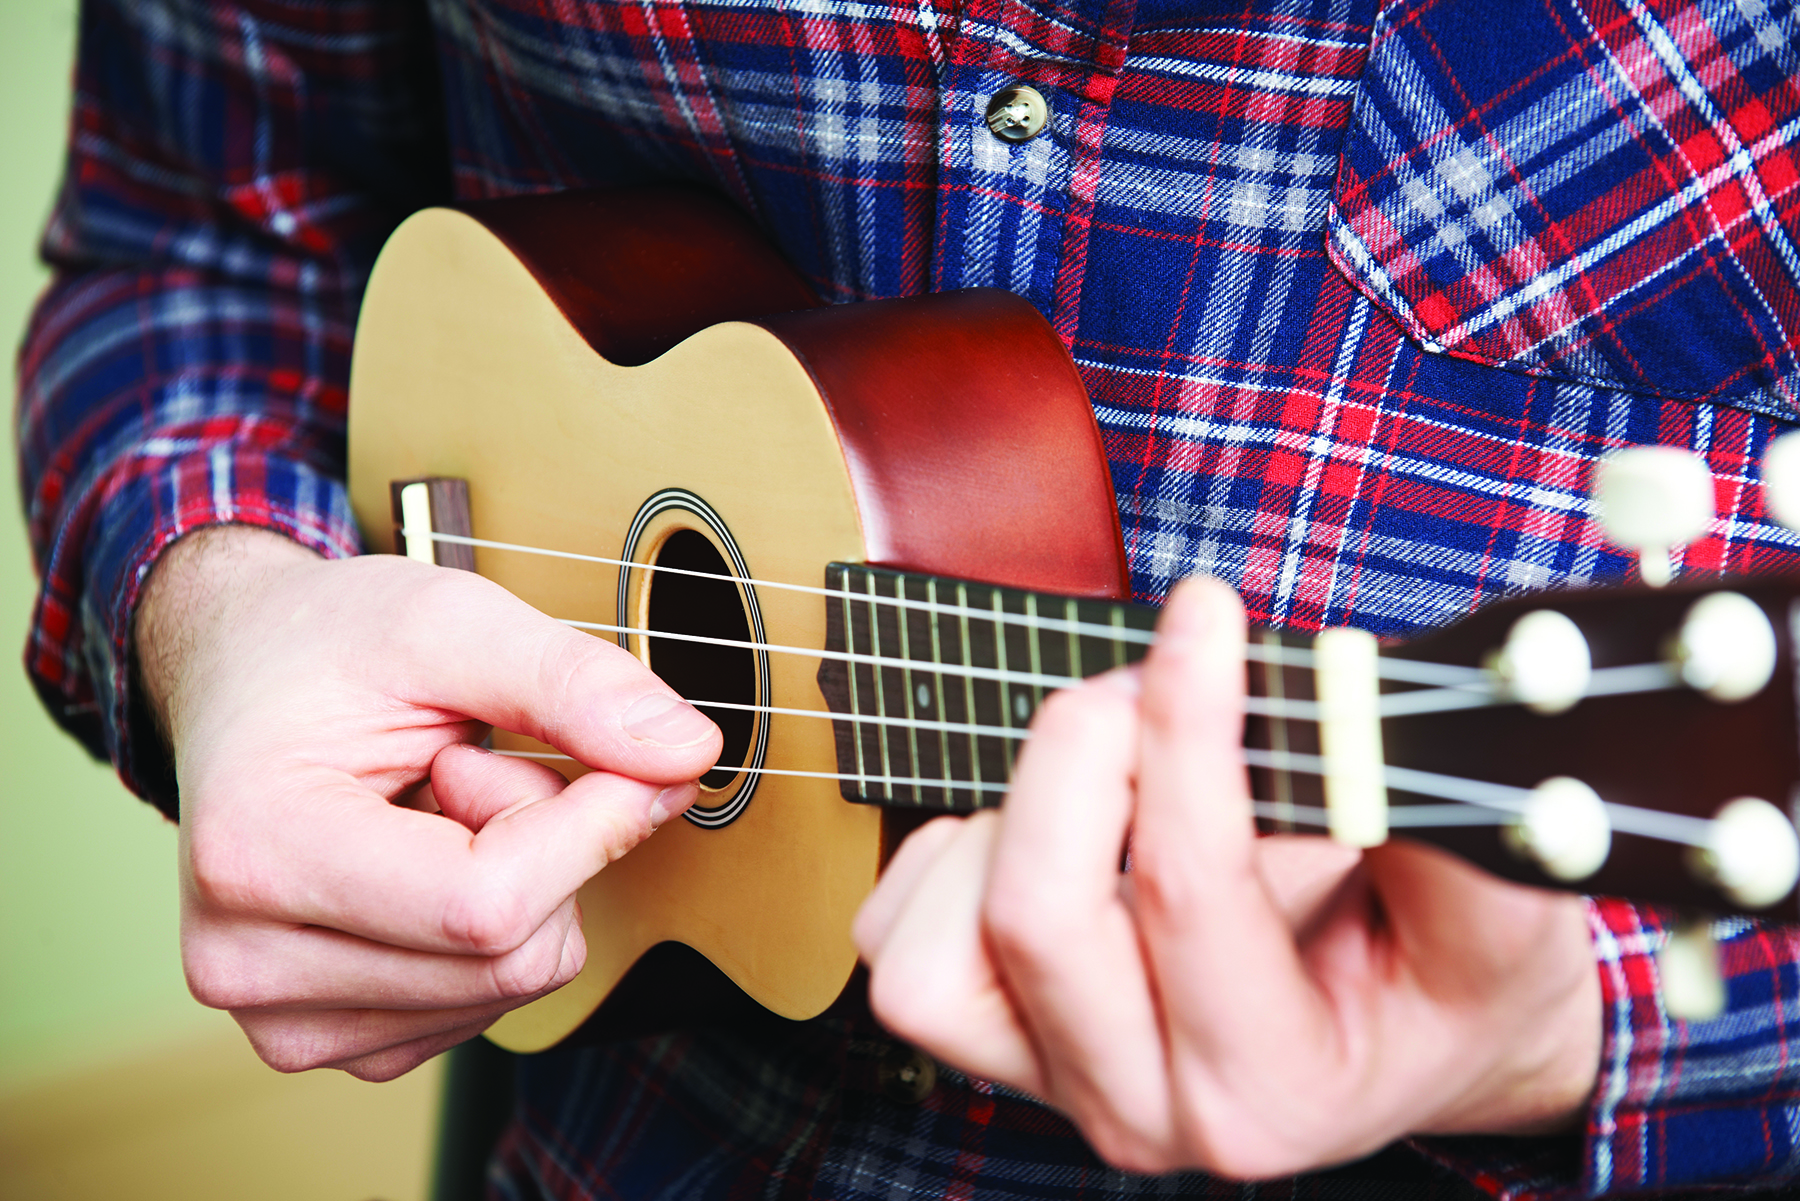 Ukulele - the little instrument with the big following!